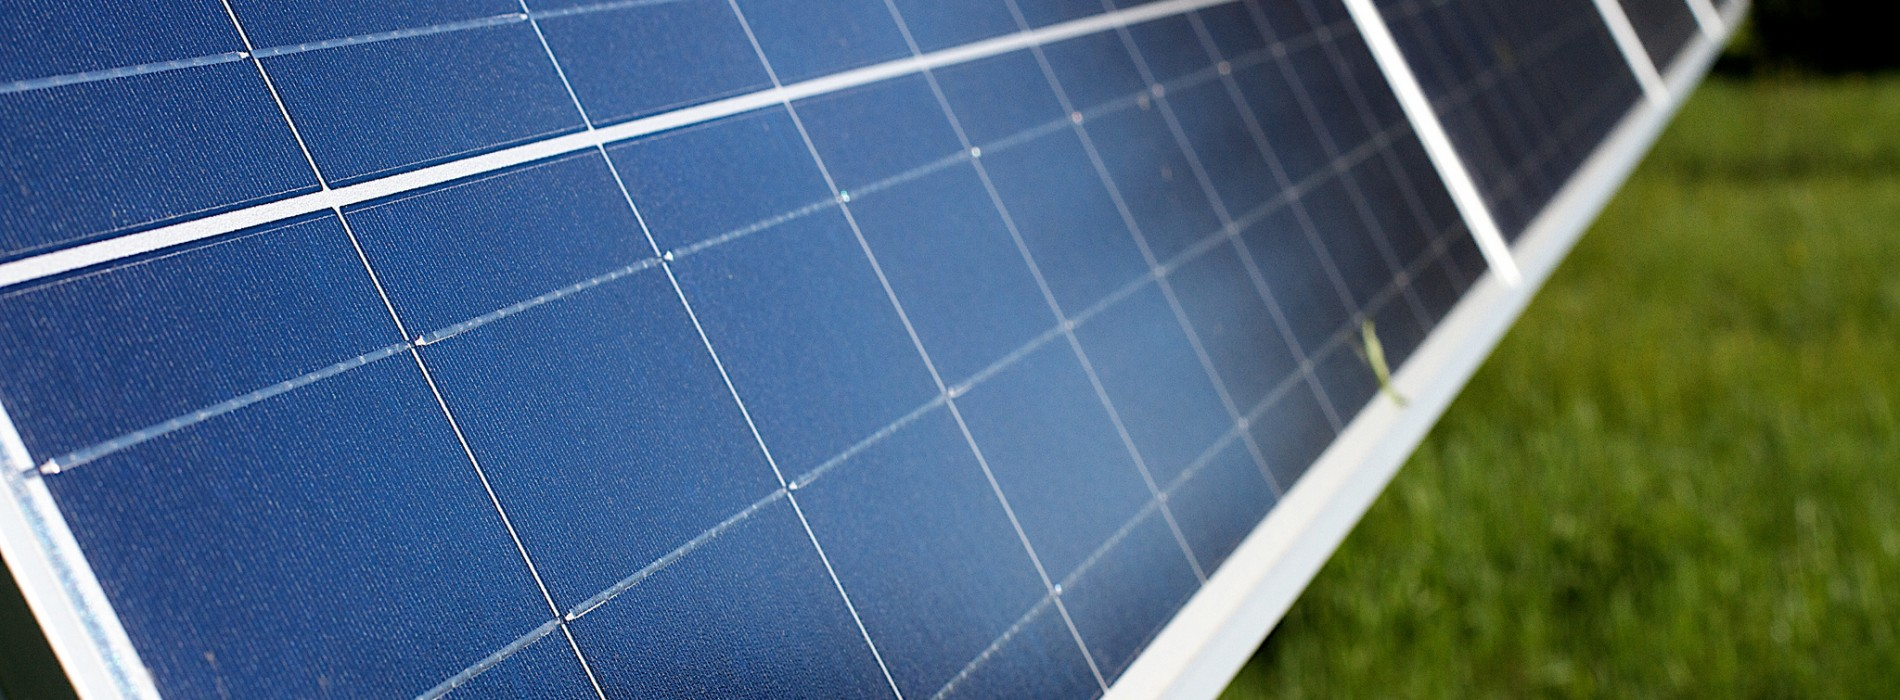 Ray of hope: moving Maine out of last place in solar